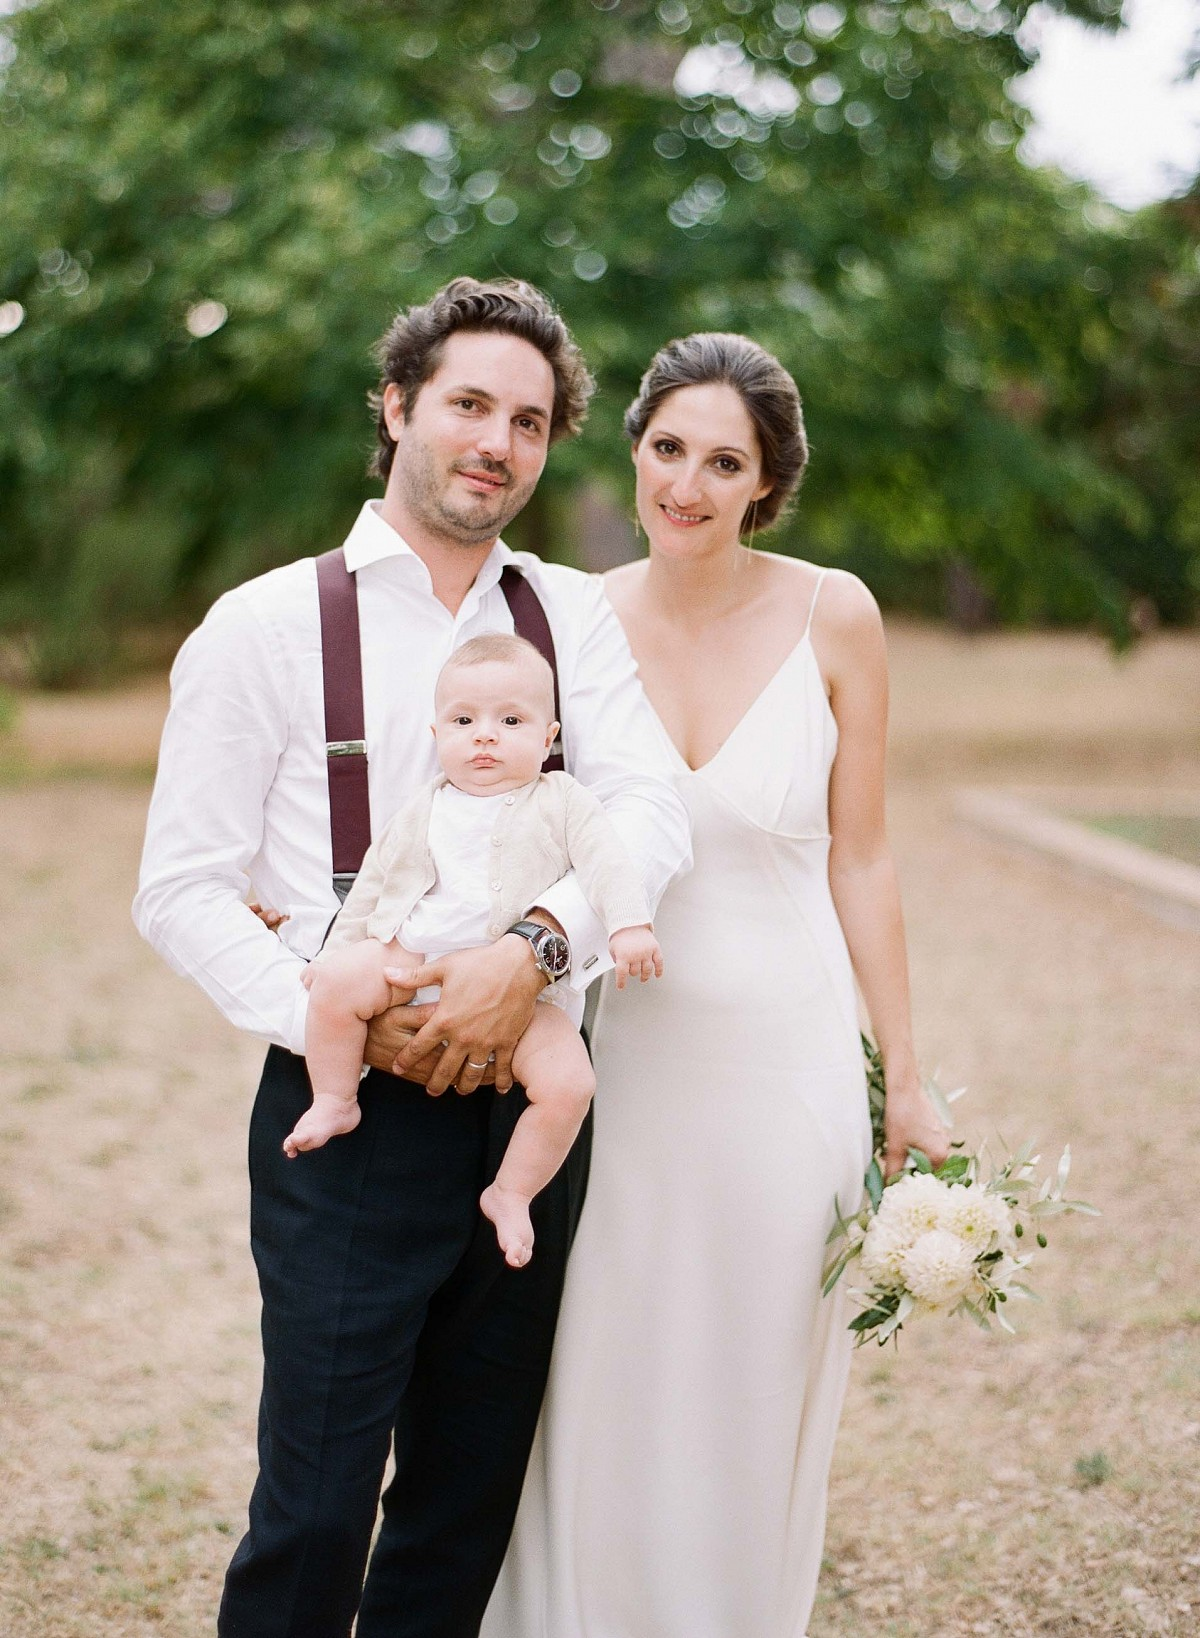 Amelie and Laurent's Classic French Wedding